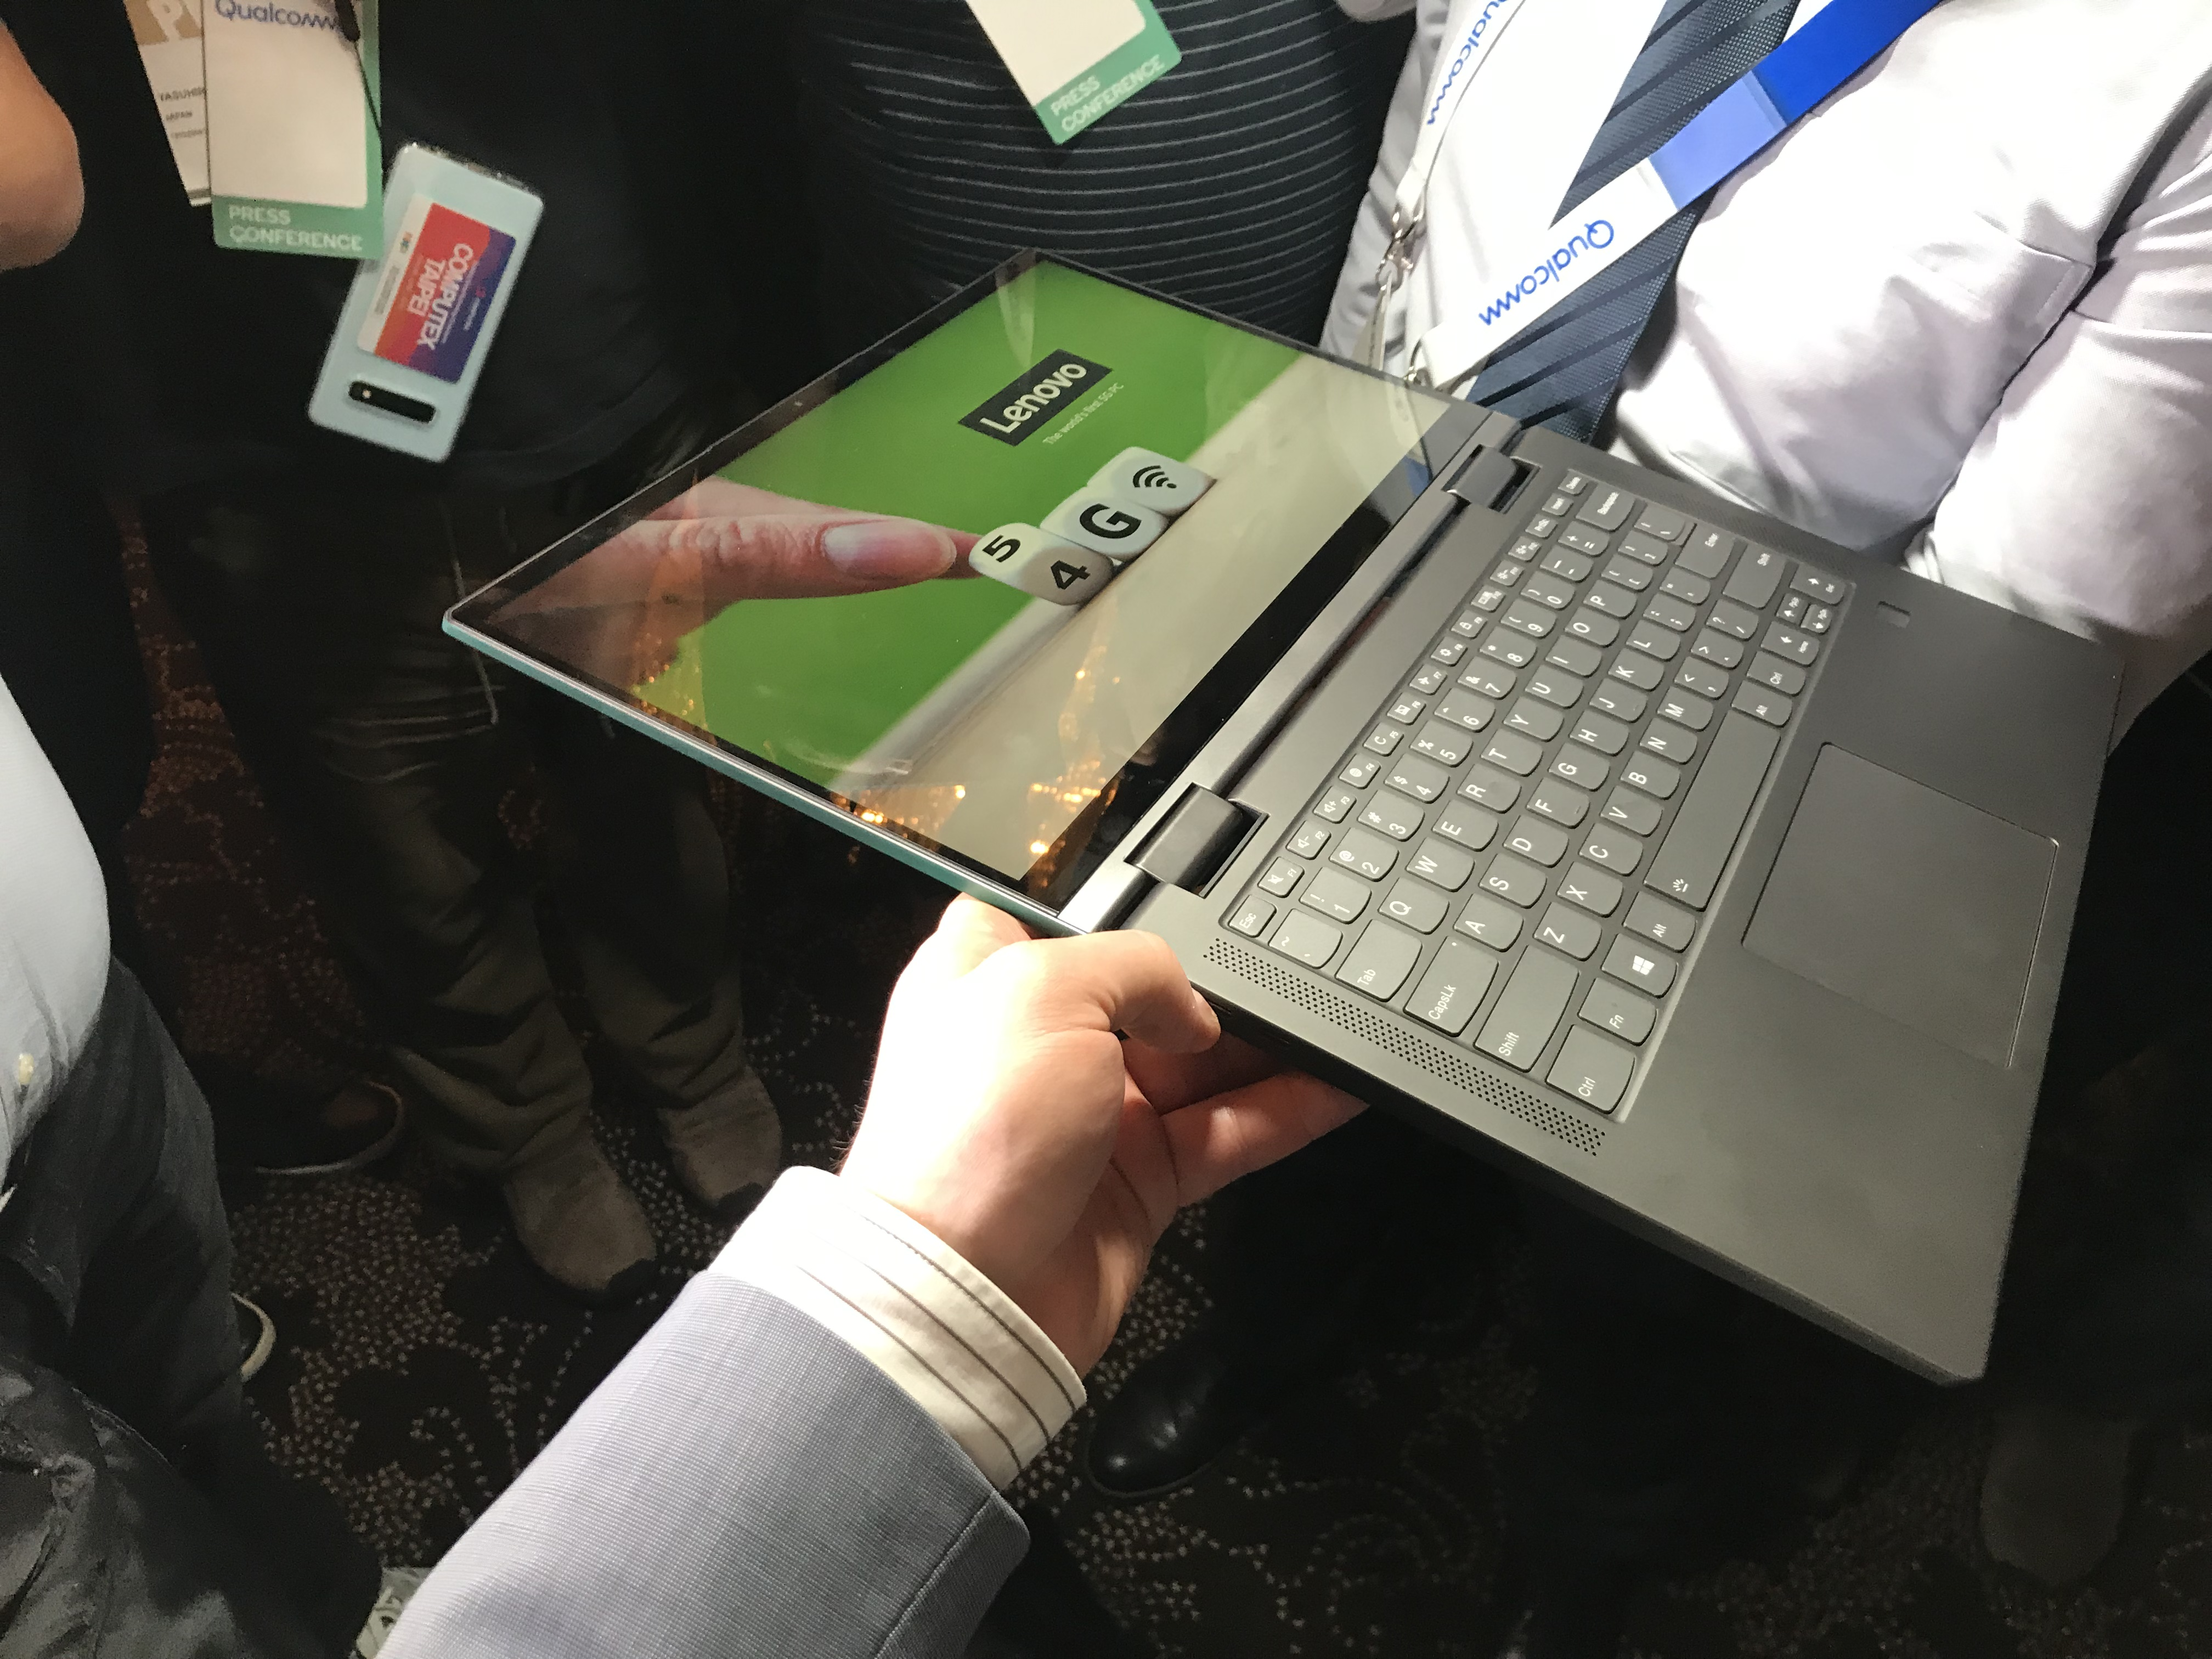 Hands-On with Industry's First 5G Laptop: A Lenovo with Qualcomm's